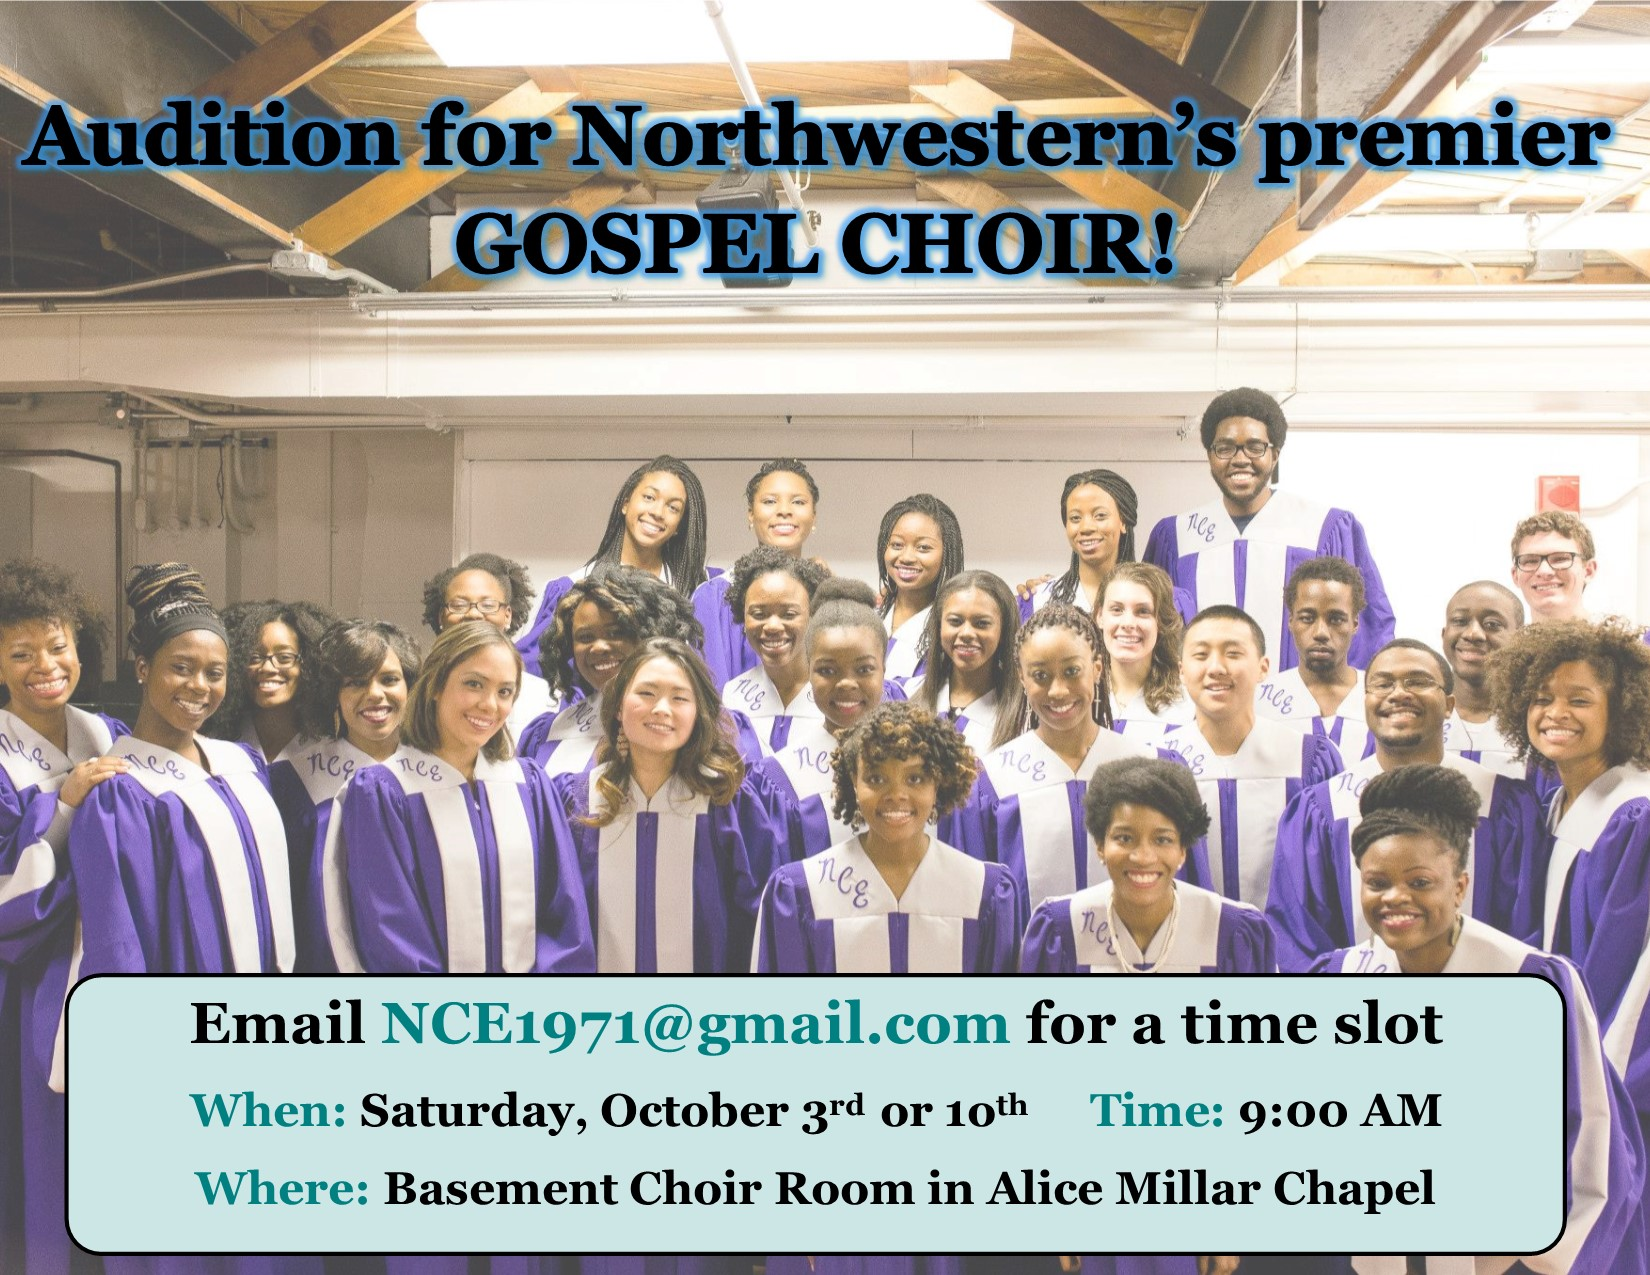 Audition for Northwestern's premier GOSPEL CHOIR!